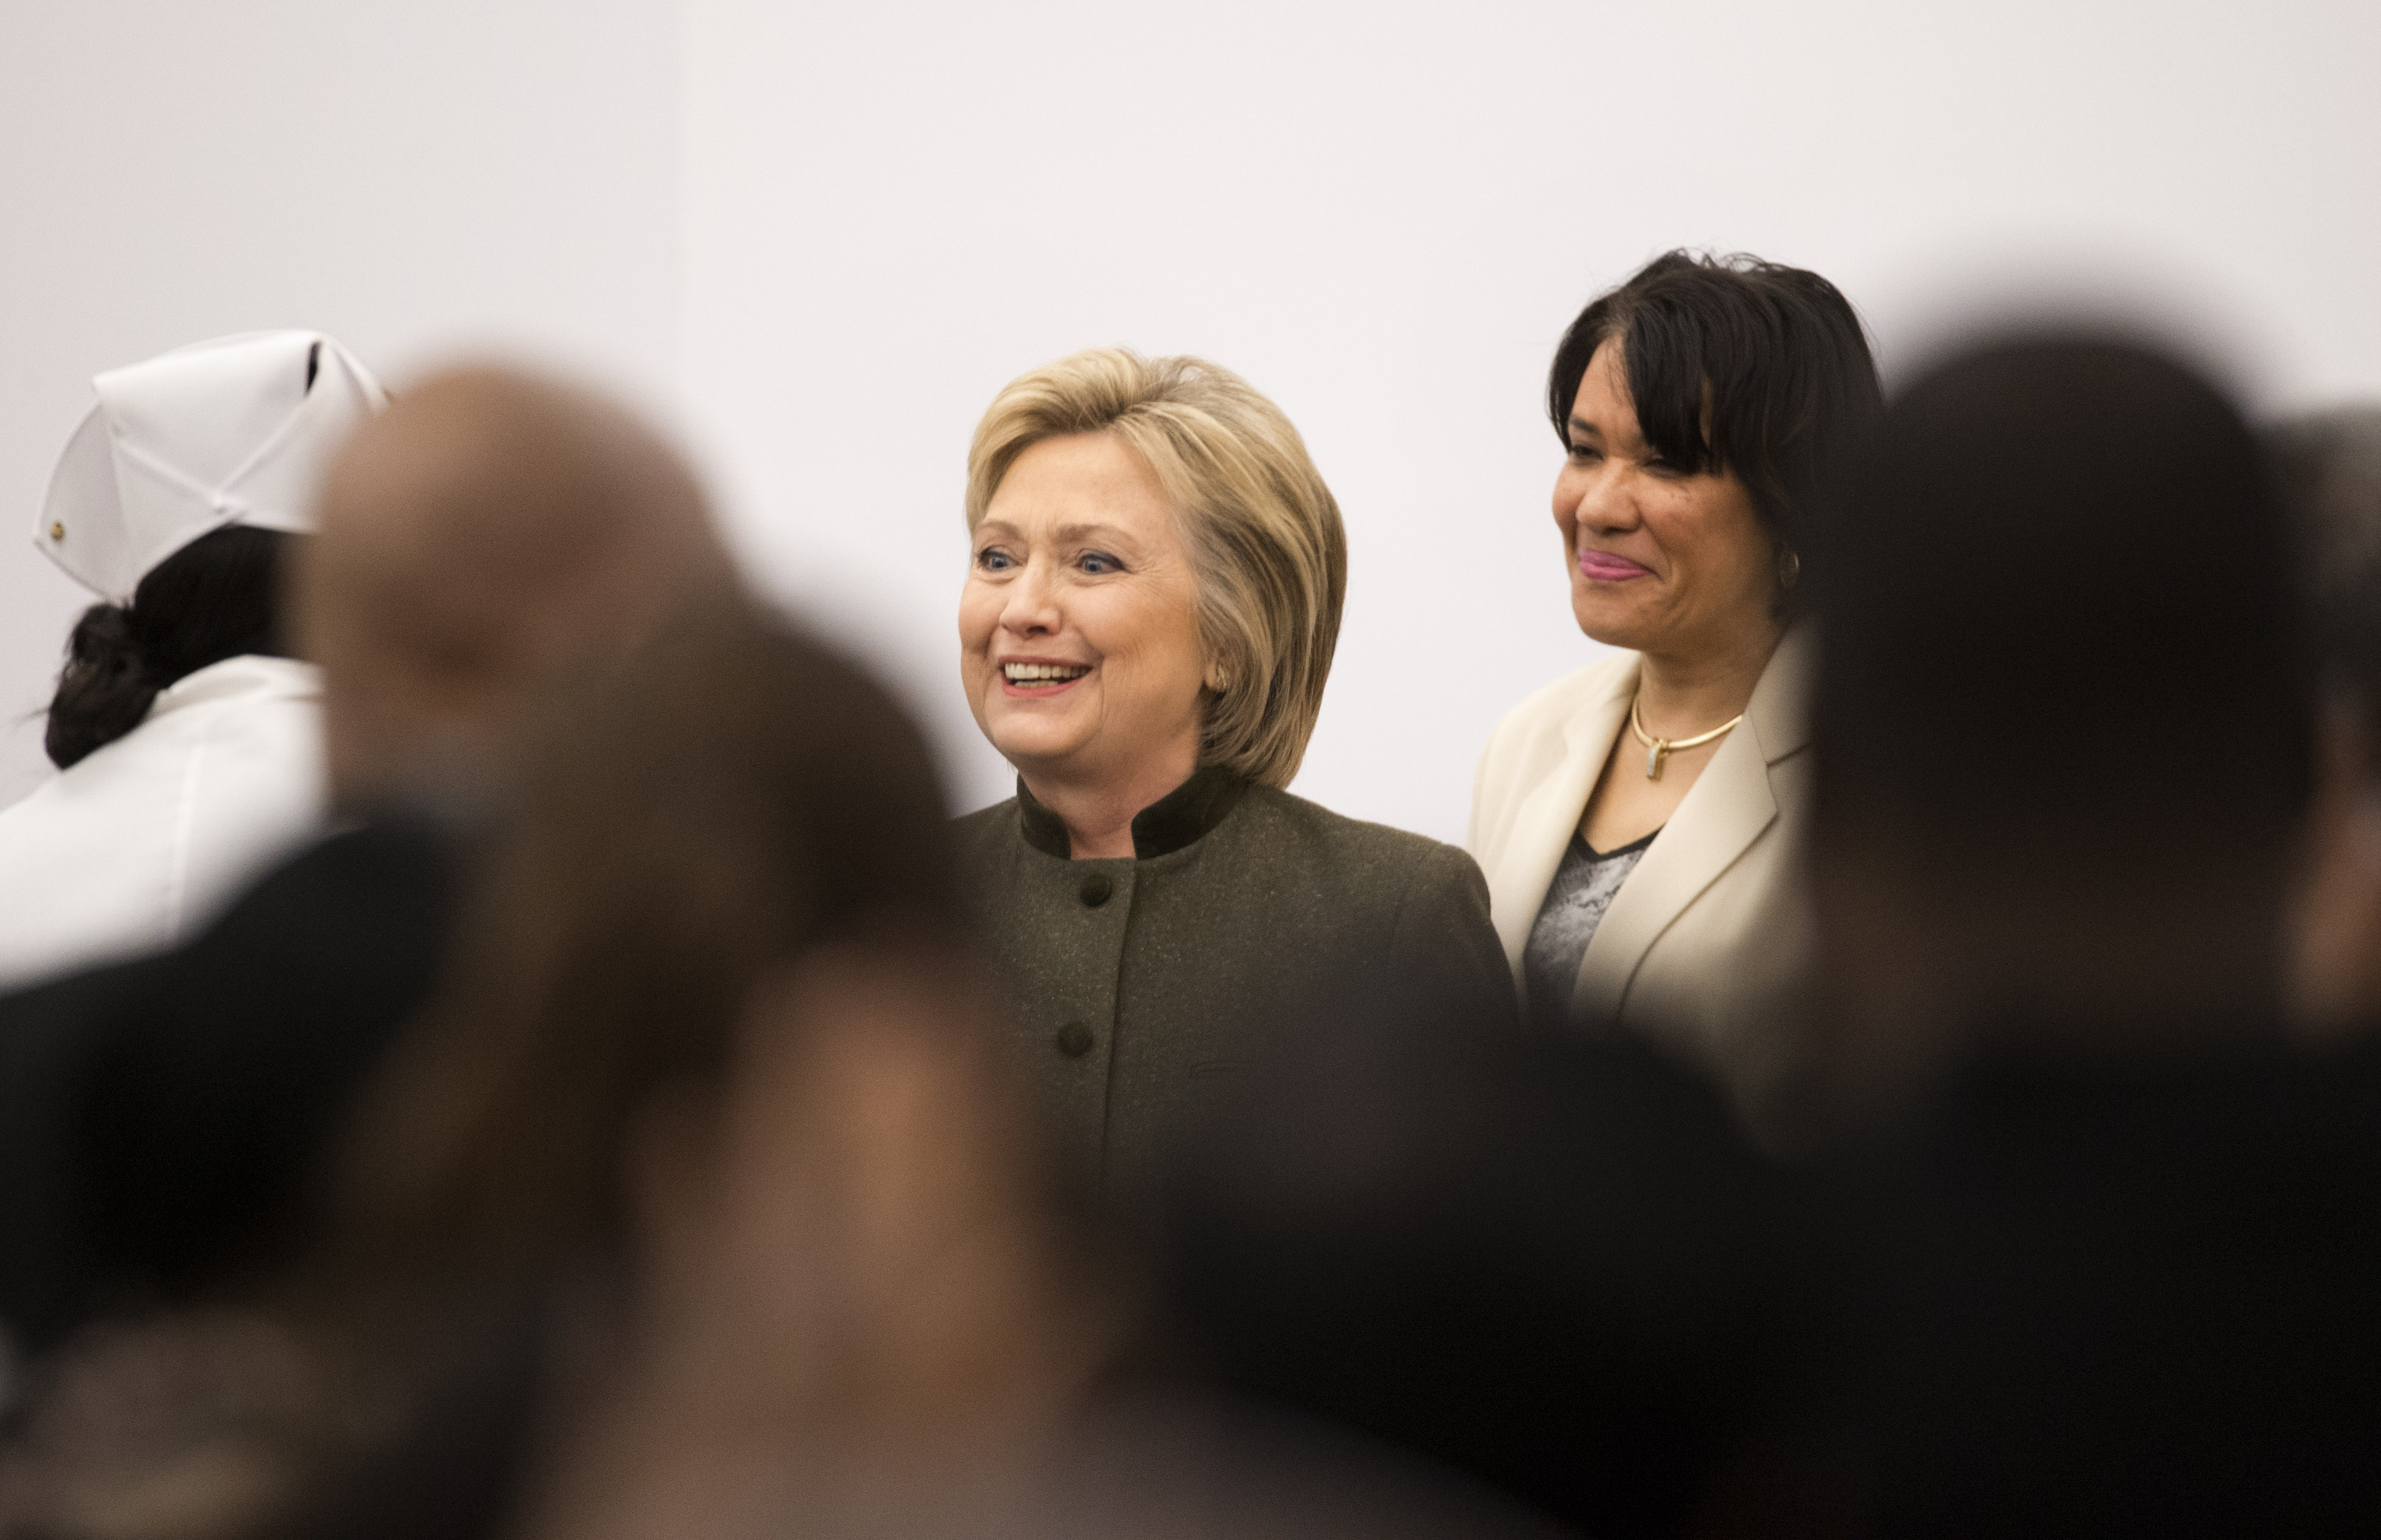 Democratic presidential candidate Hillary Clinton appears with Flint Mayor Karen Weaver at the House Of Prayer Missionary Baptist Church, Sunday, Feb. 7, 2016 in Flint, Mich. (AP Photo/Paul Sancya)